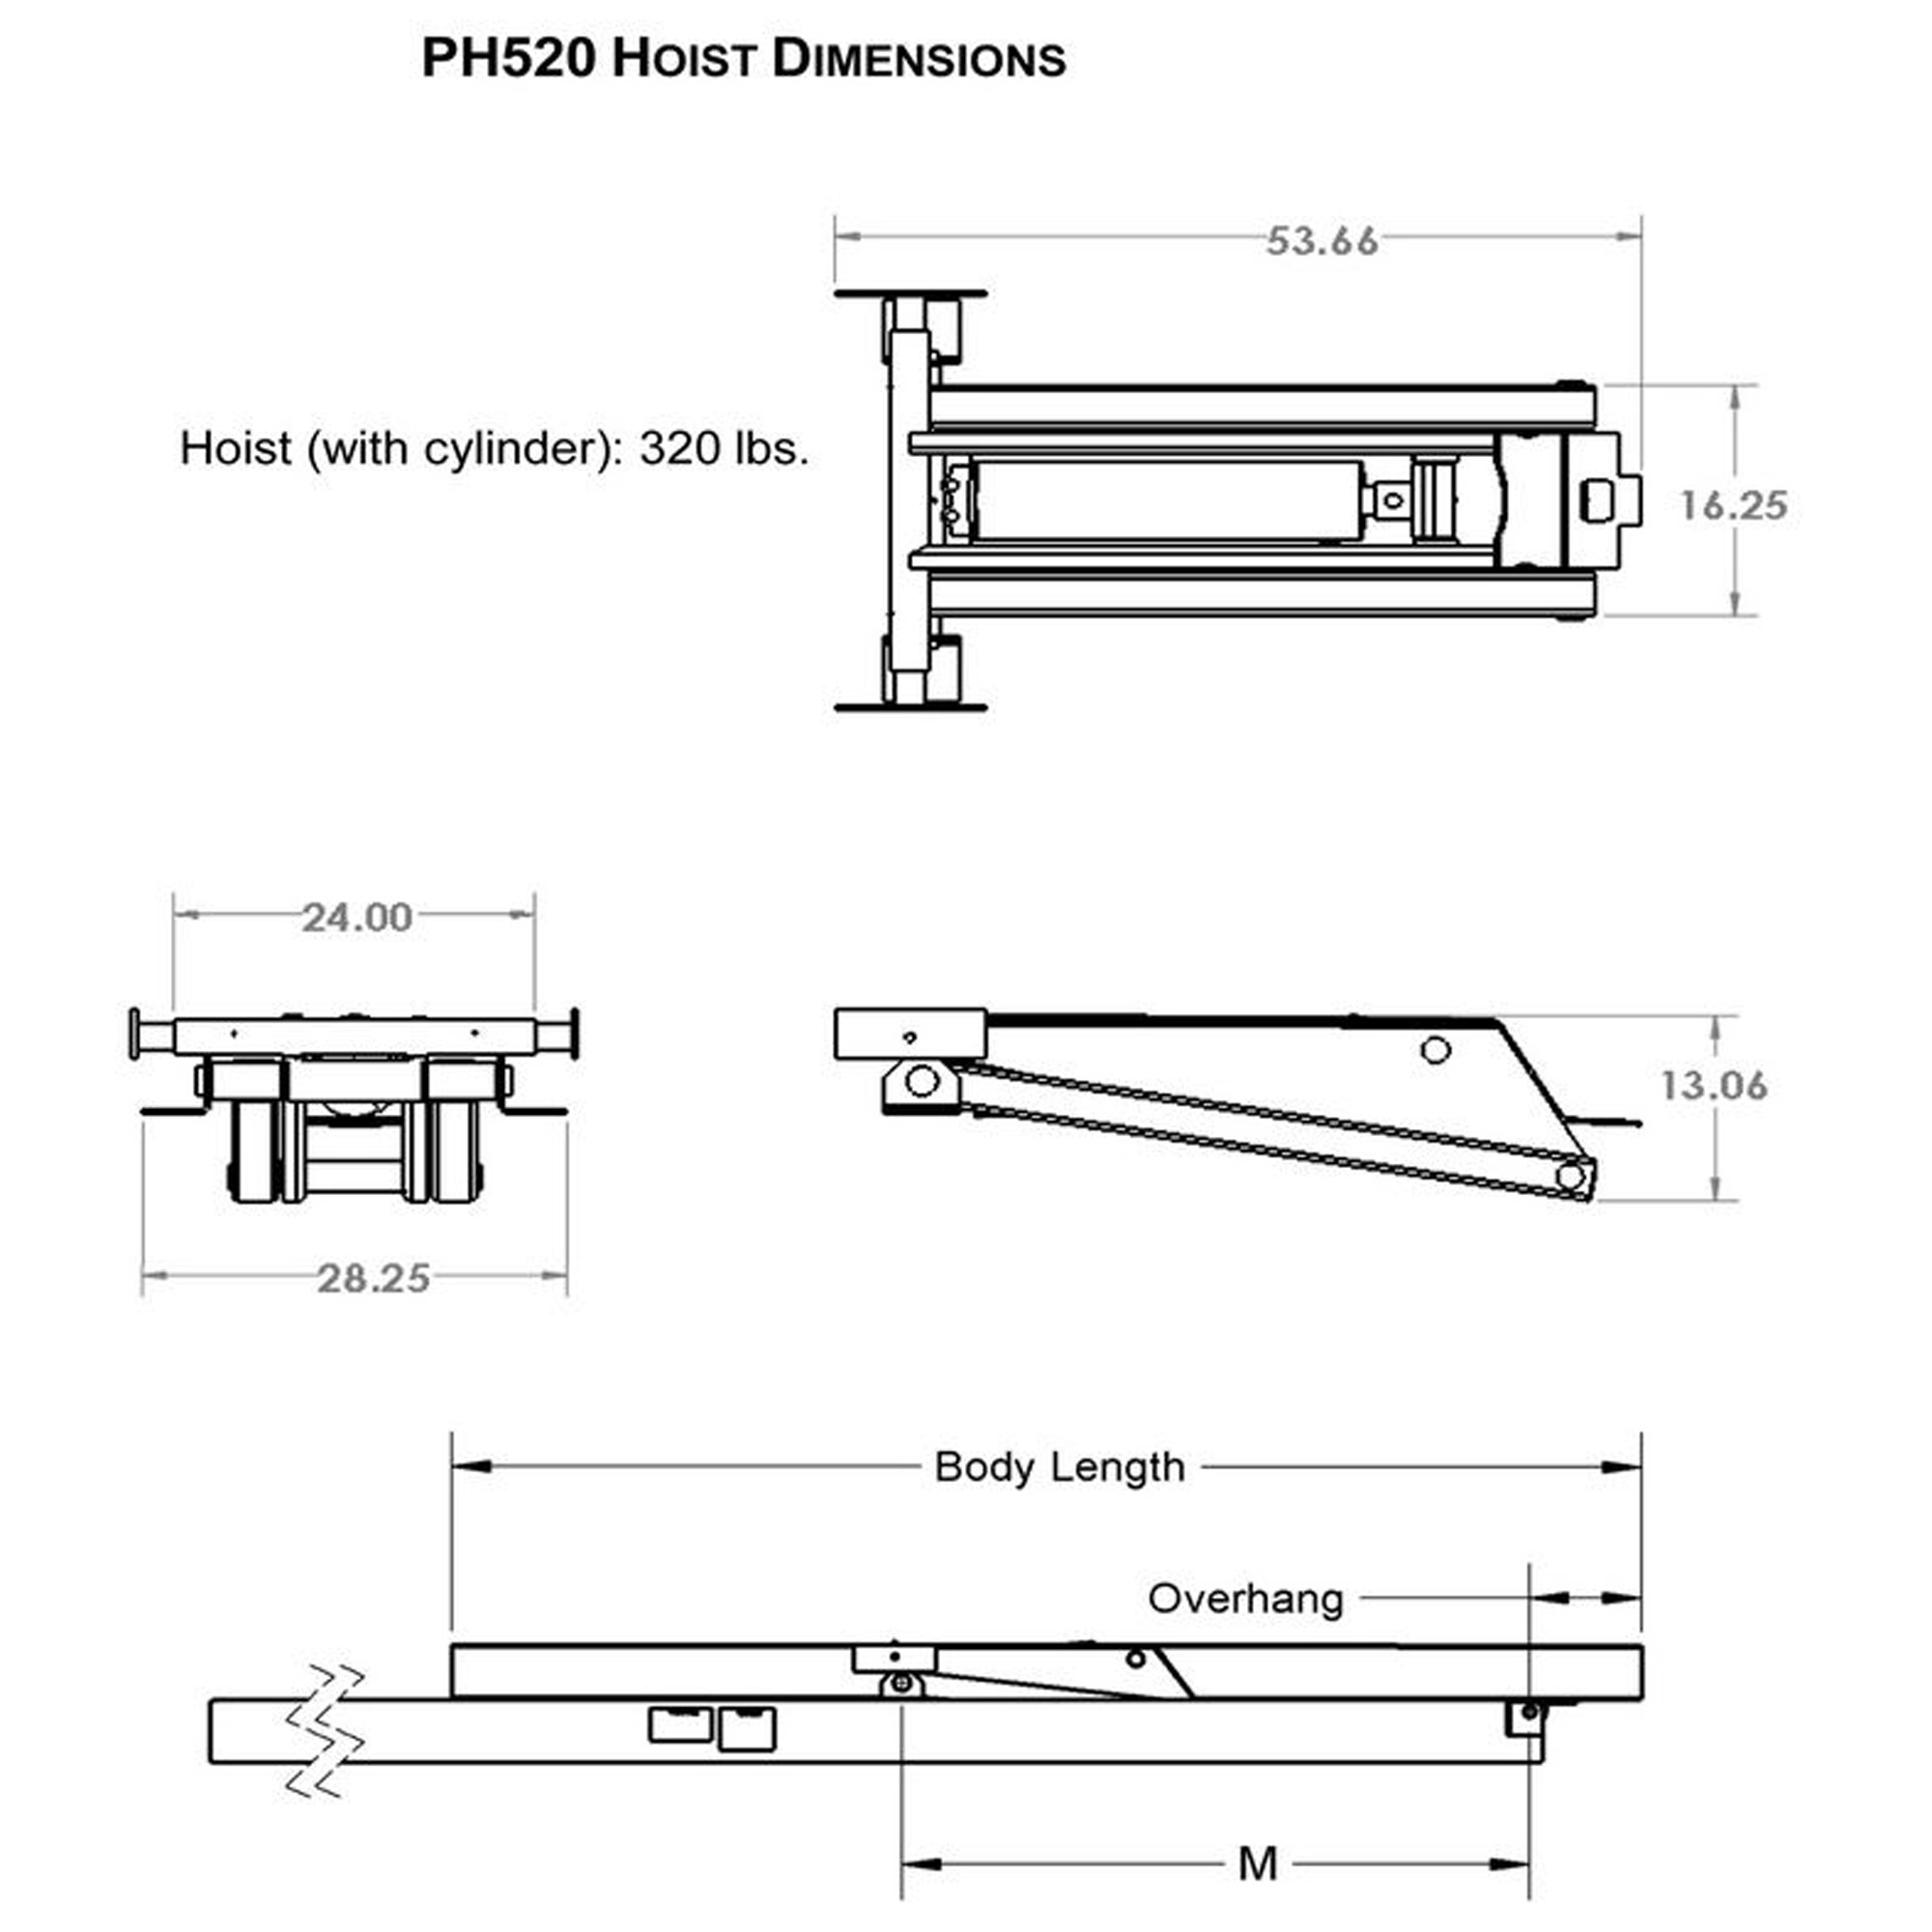 Premium Supply PH520 Power Hoist Dimensions?x88201 10 ton (20,000 lb) dump trailer hydraulic scissor hoist kit ph520 dump trailer hydraulic pump wiring diagram at gsmportal.co